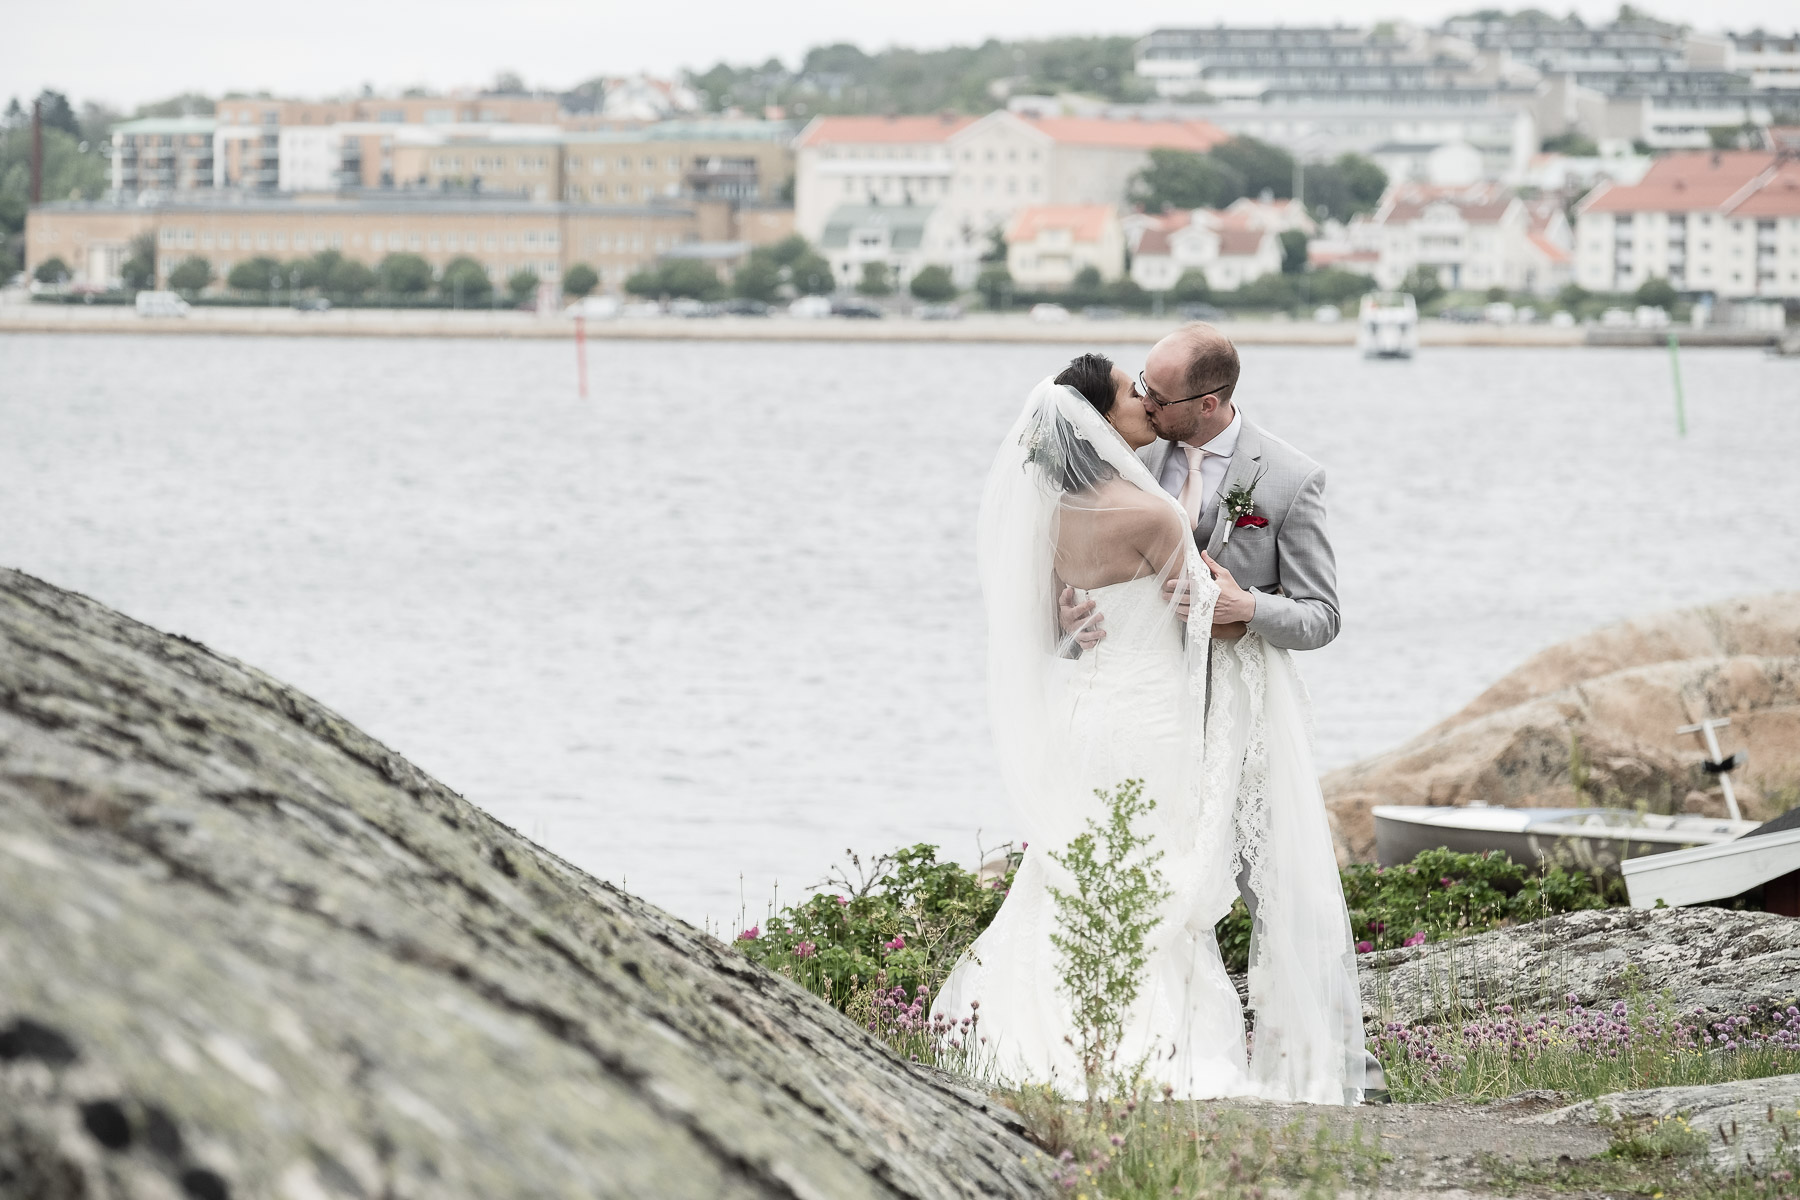 Click to enlarge image ina&peter-furholmen-ottossonphoto-1018.jpg